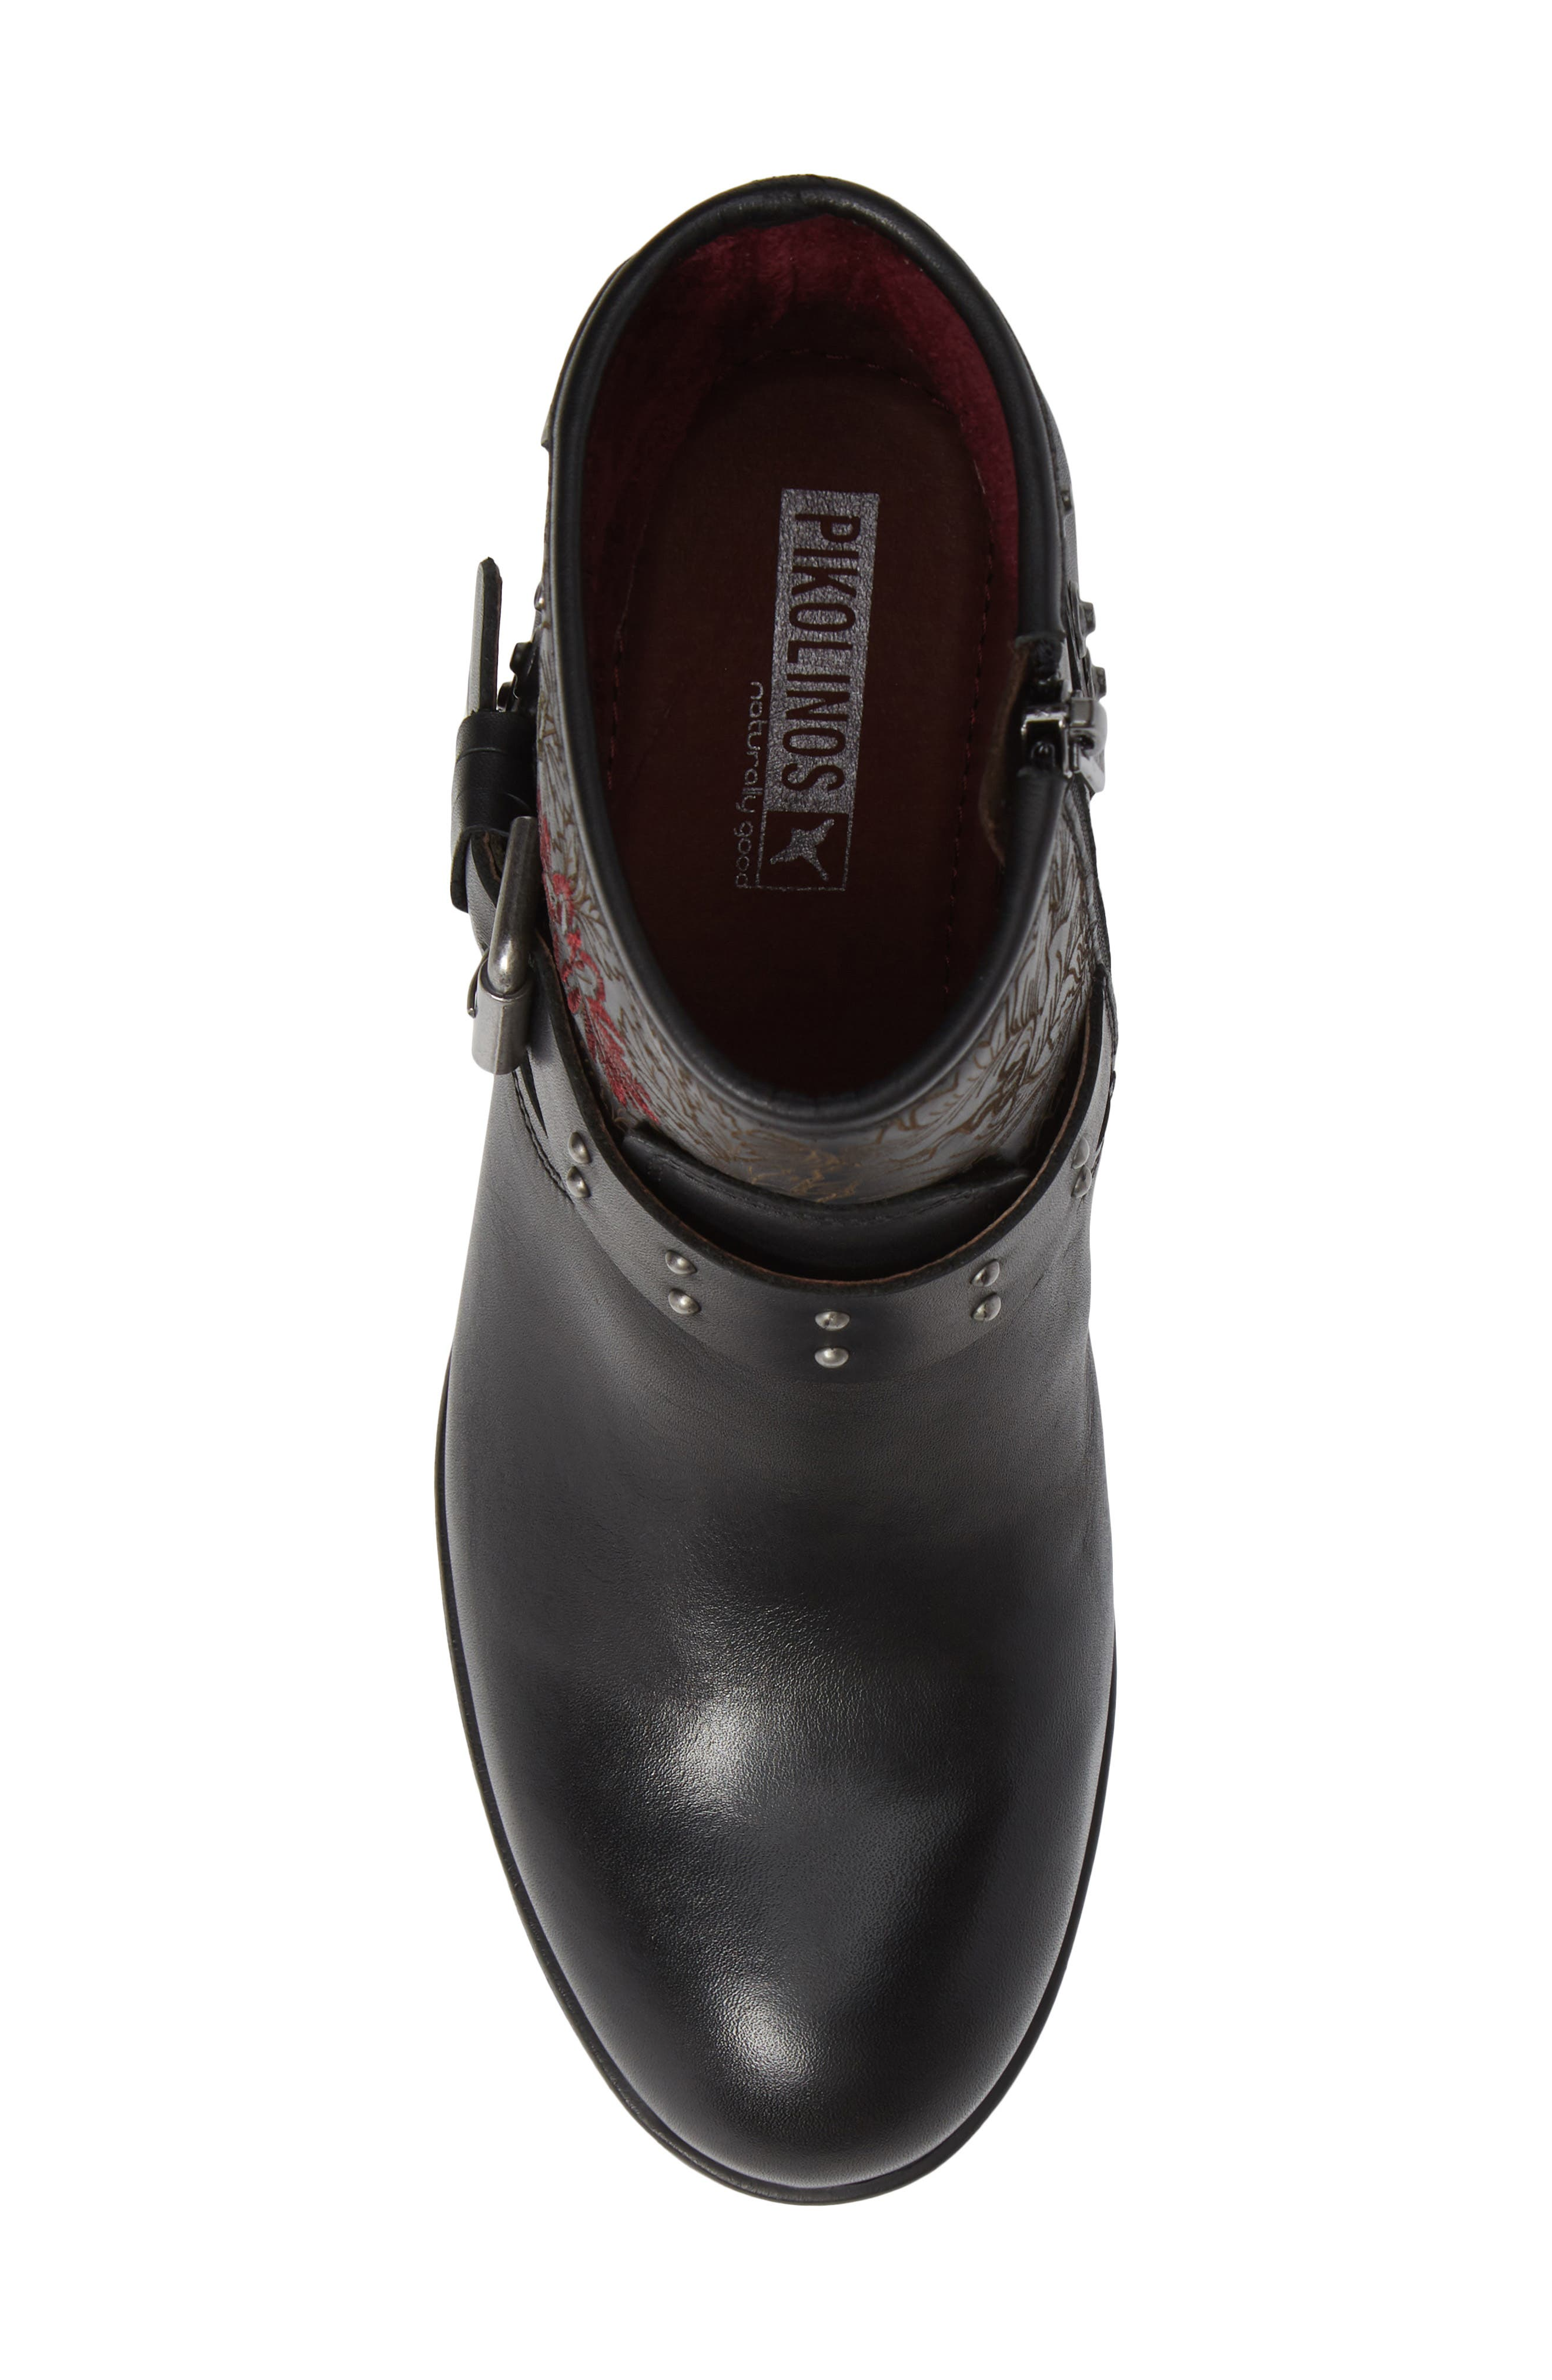 Lyon Embroidered Engineer Bootie,                             Alternate thumbnail 5, color,                             BLACK LEATHER